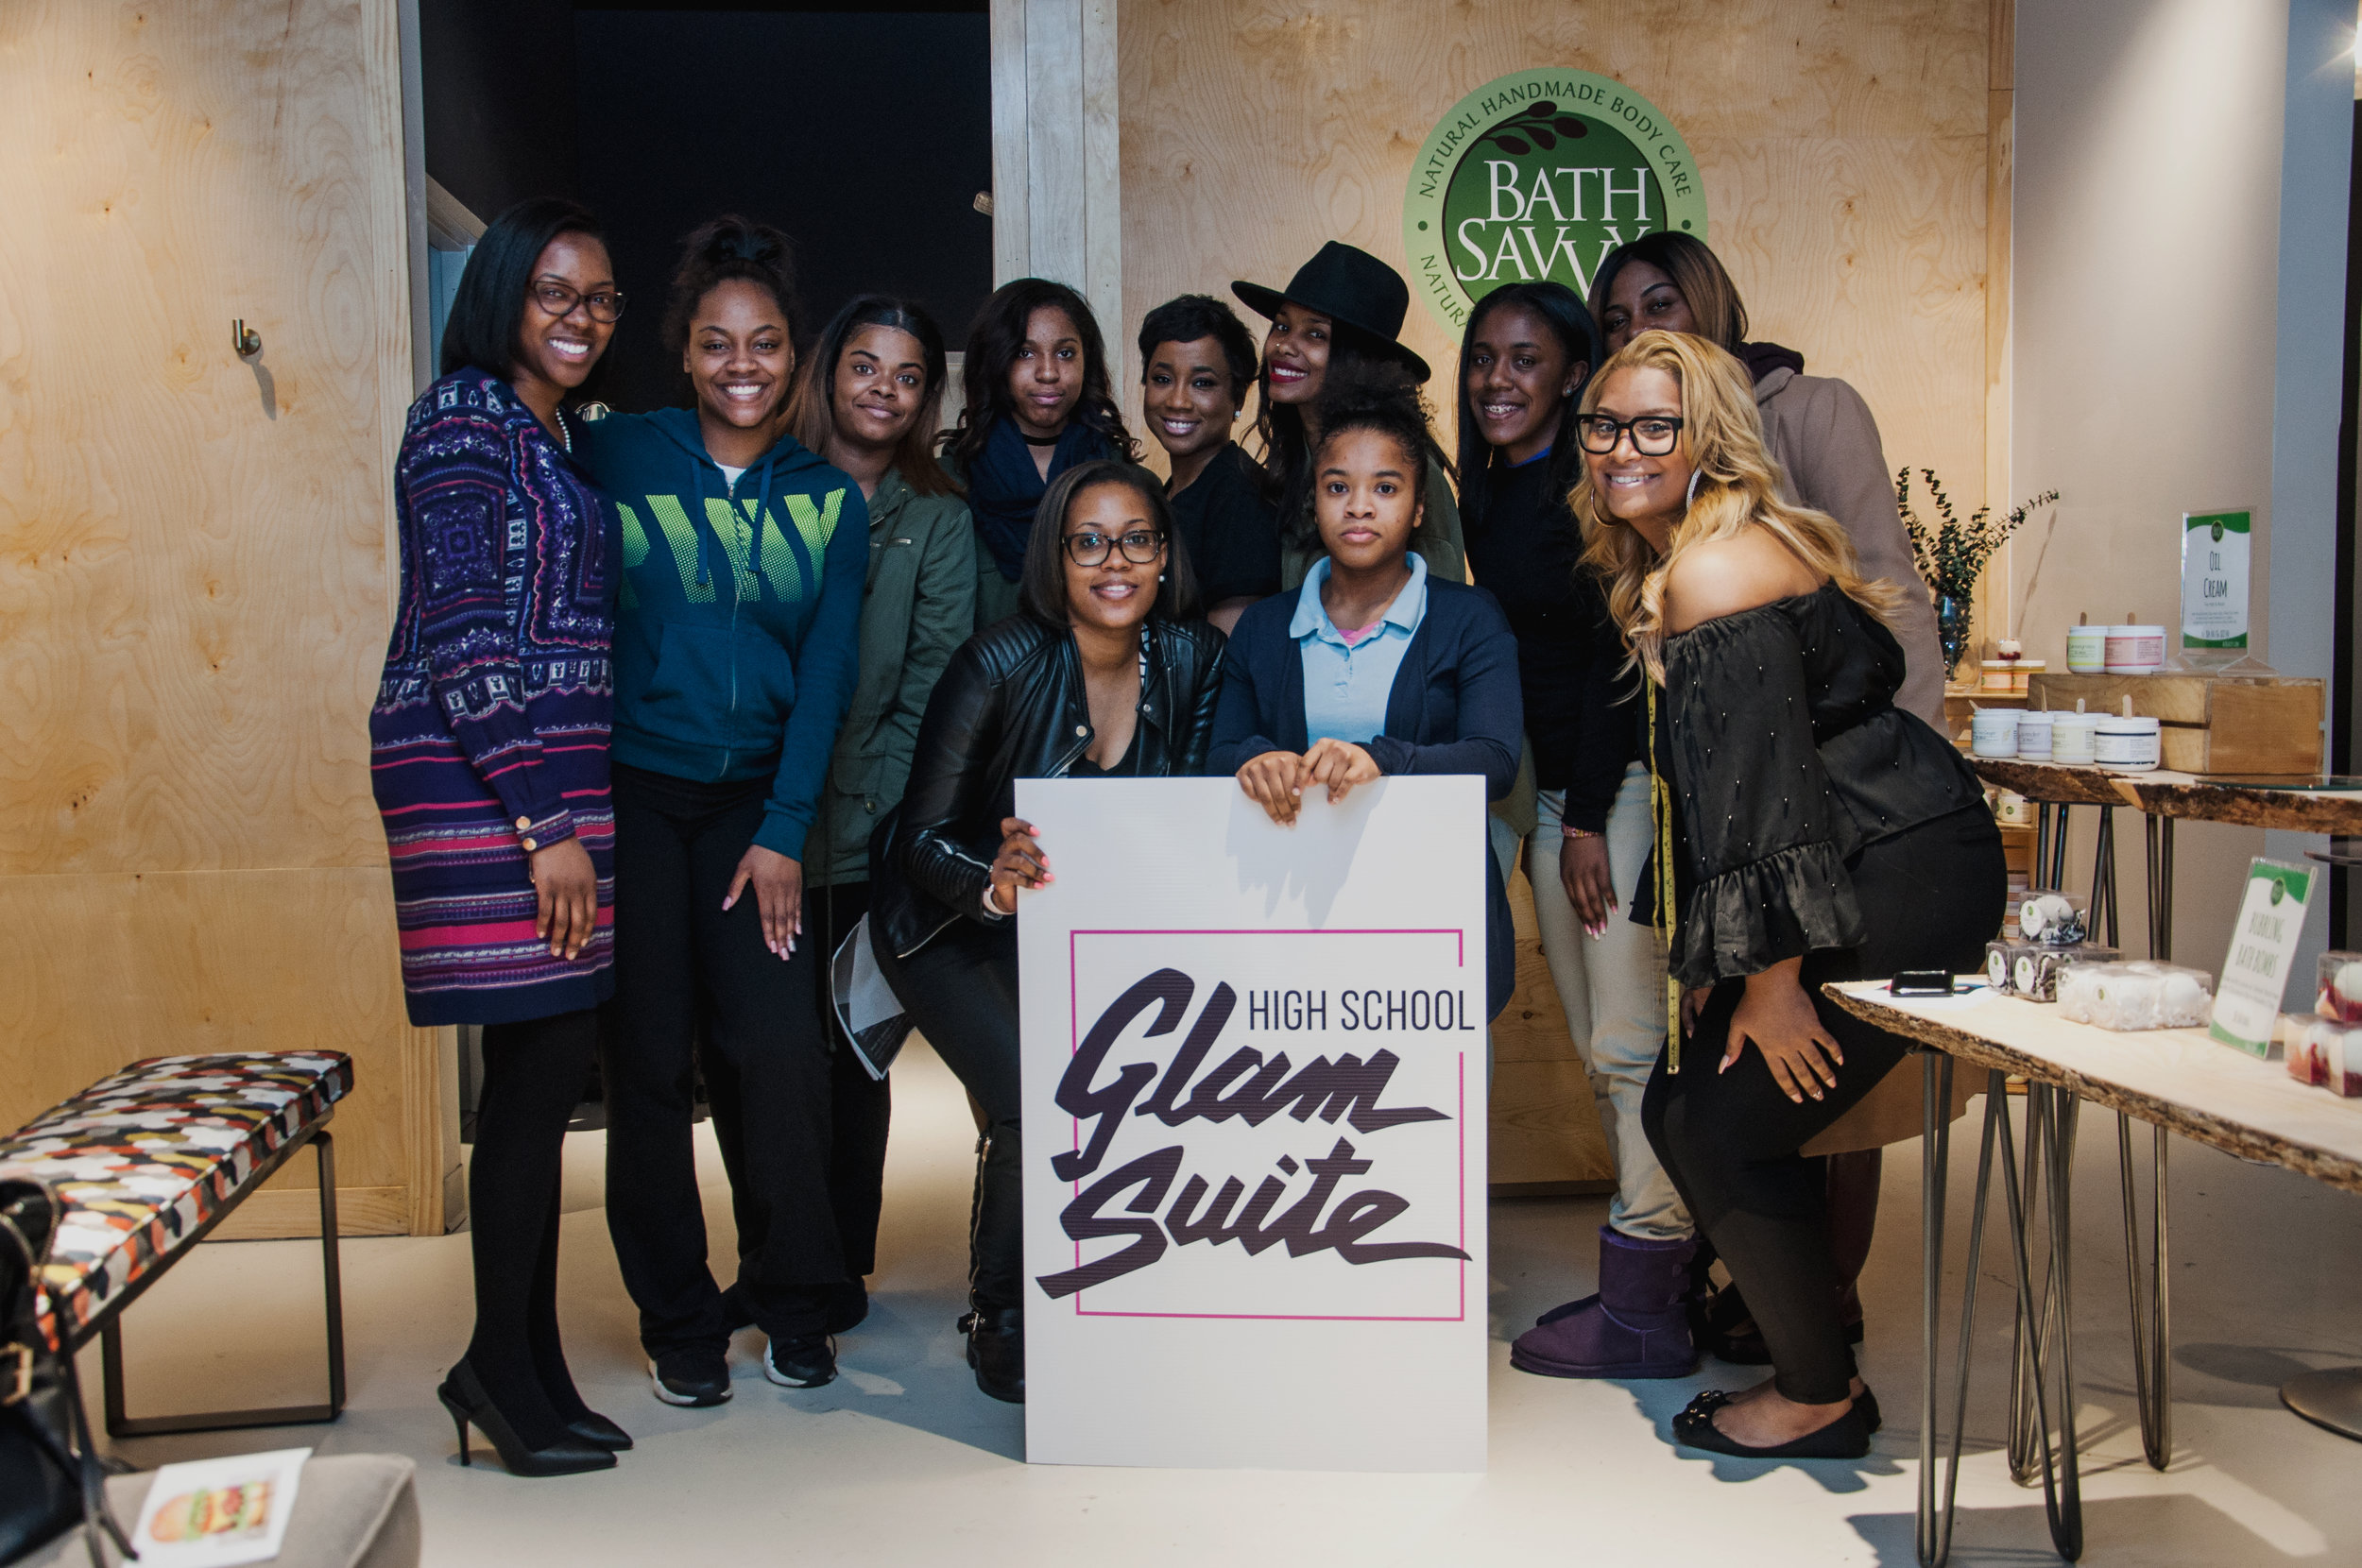 Cheers to the Class of 2017! - We kicked off the High School Glam Suite 2017 with a new workshop: True You with Melissa Butler of The Lip Bar.